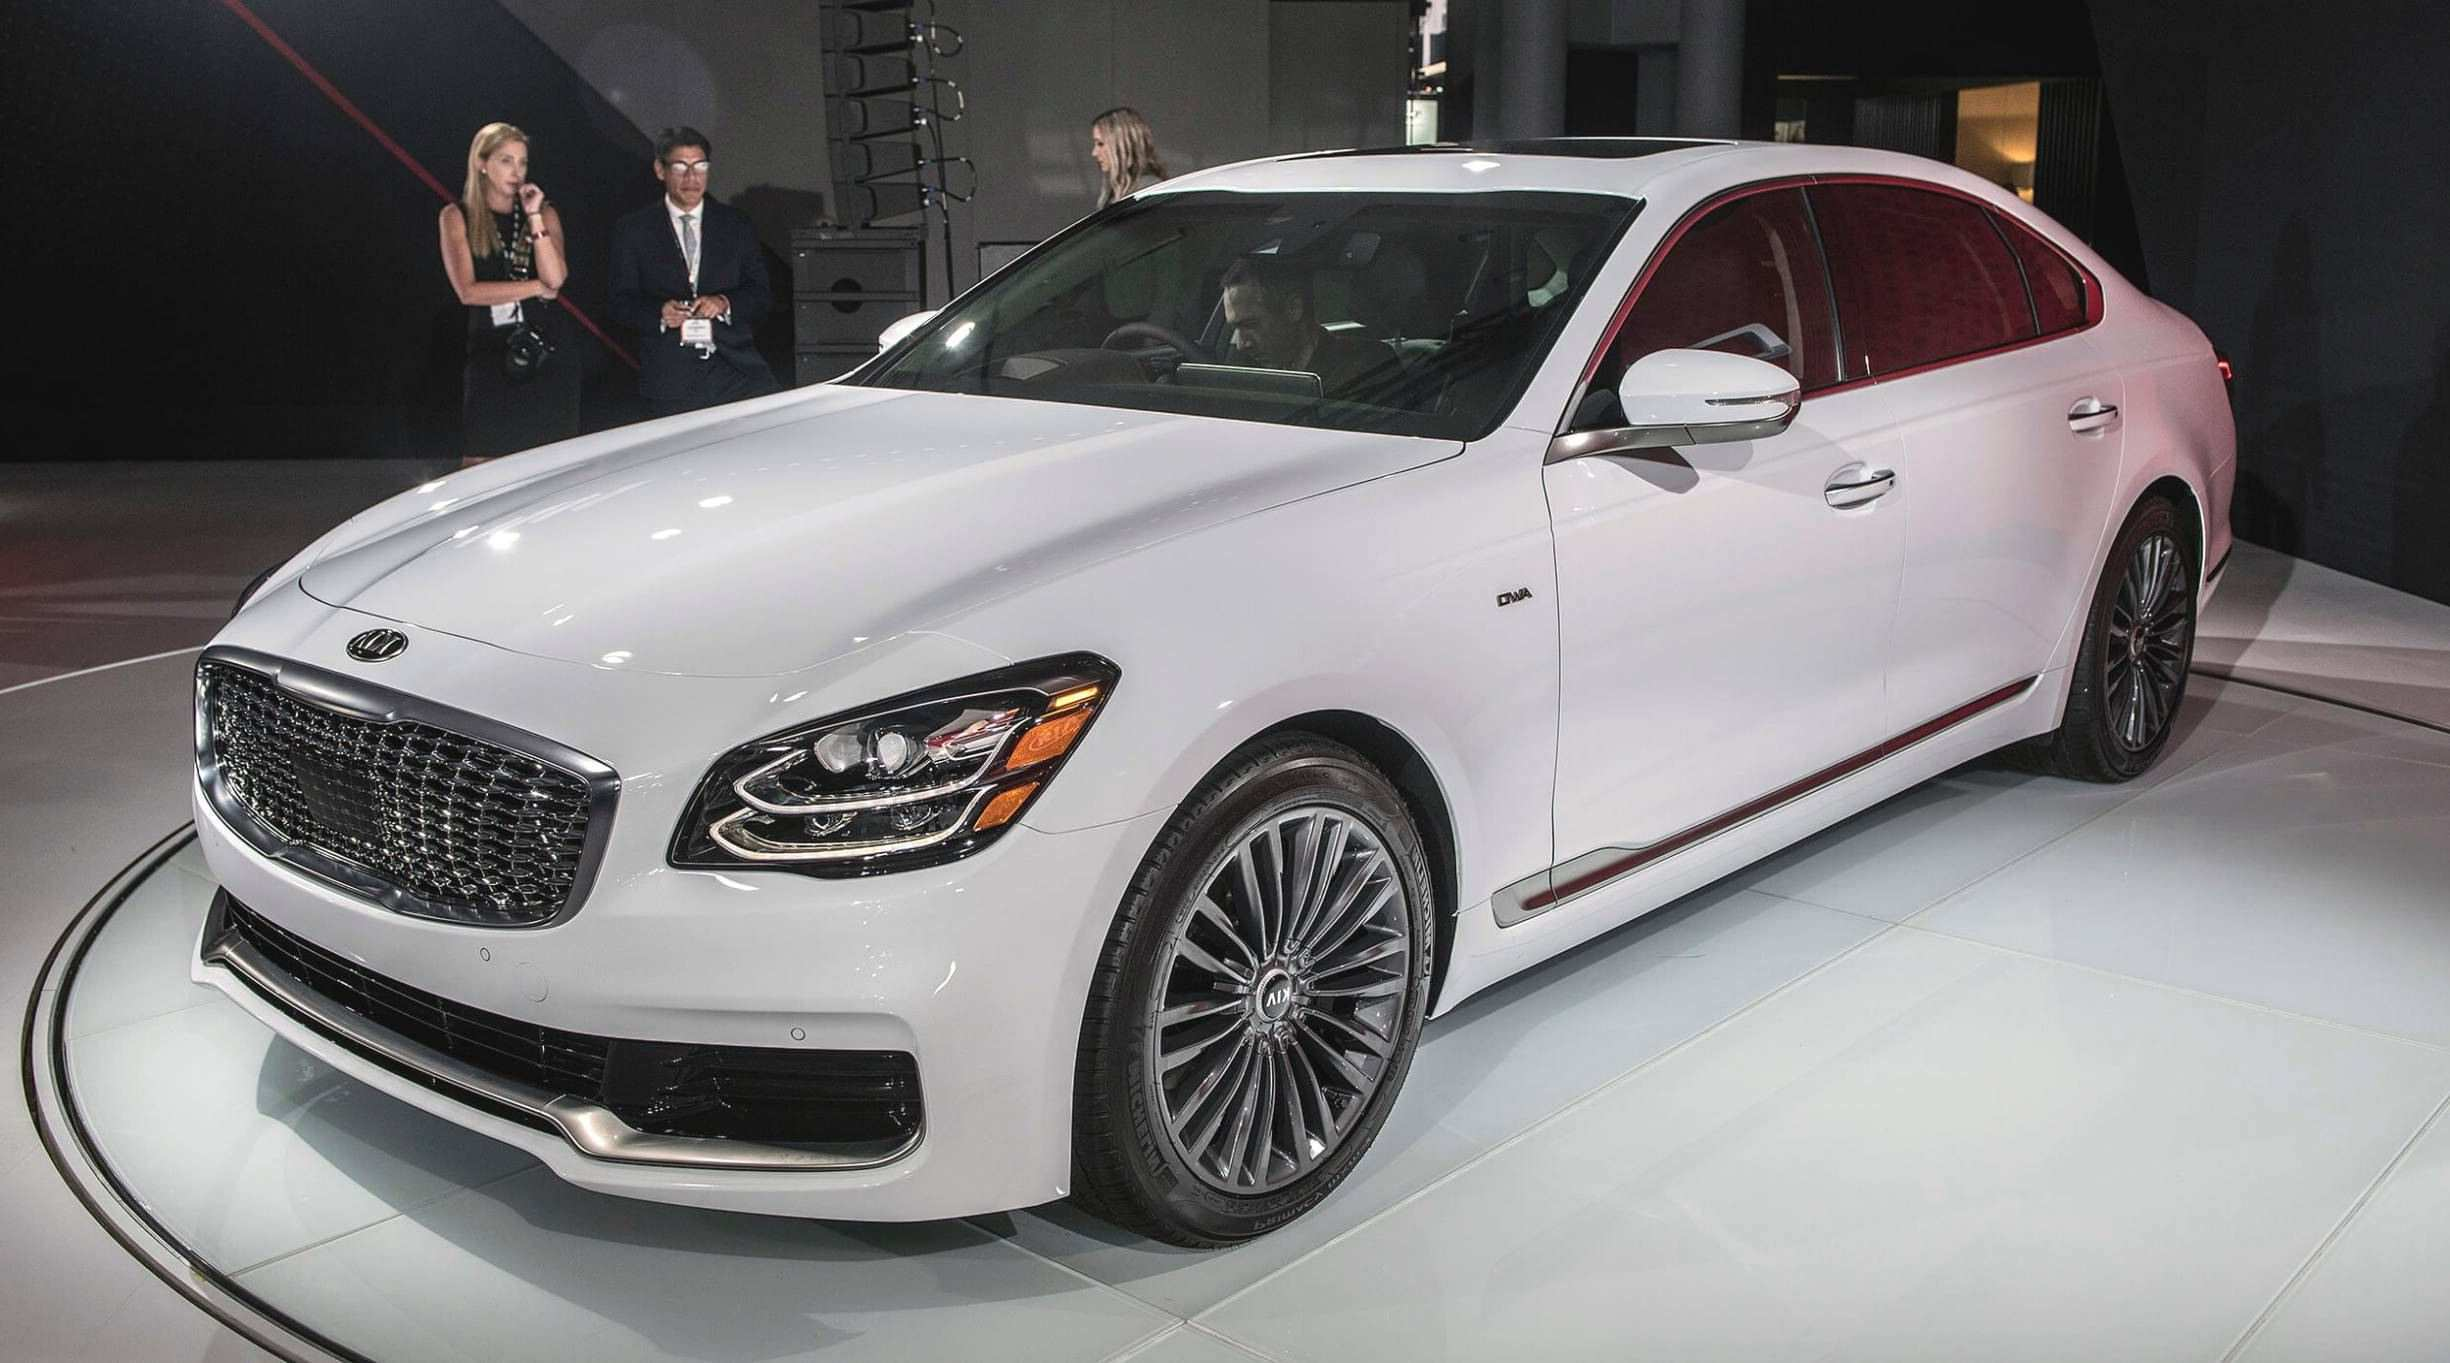 90 New K900 Kia 2020 Model for K900 Kia 2020